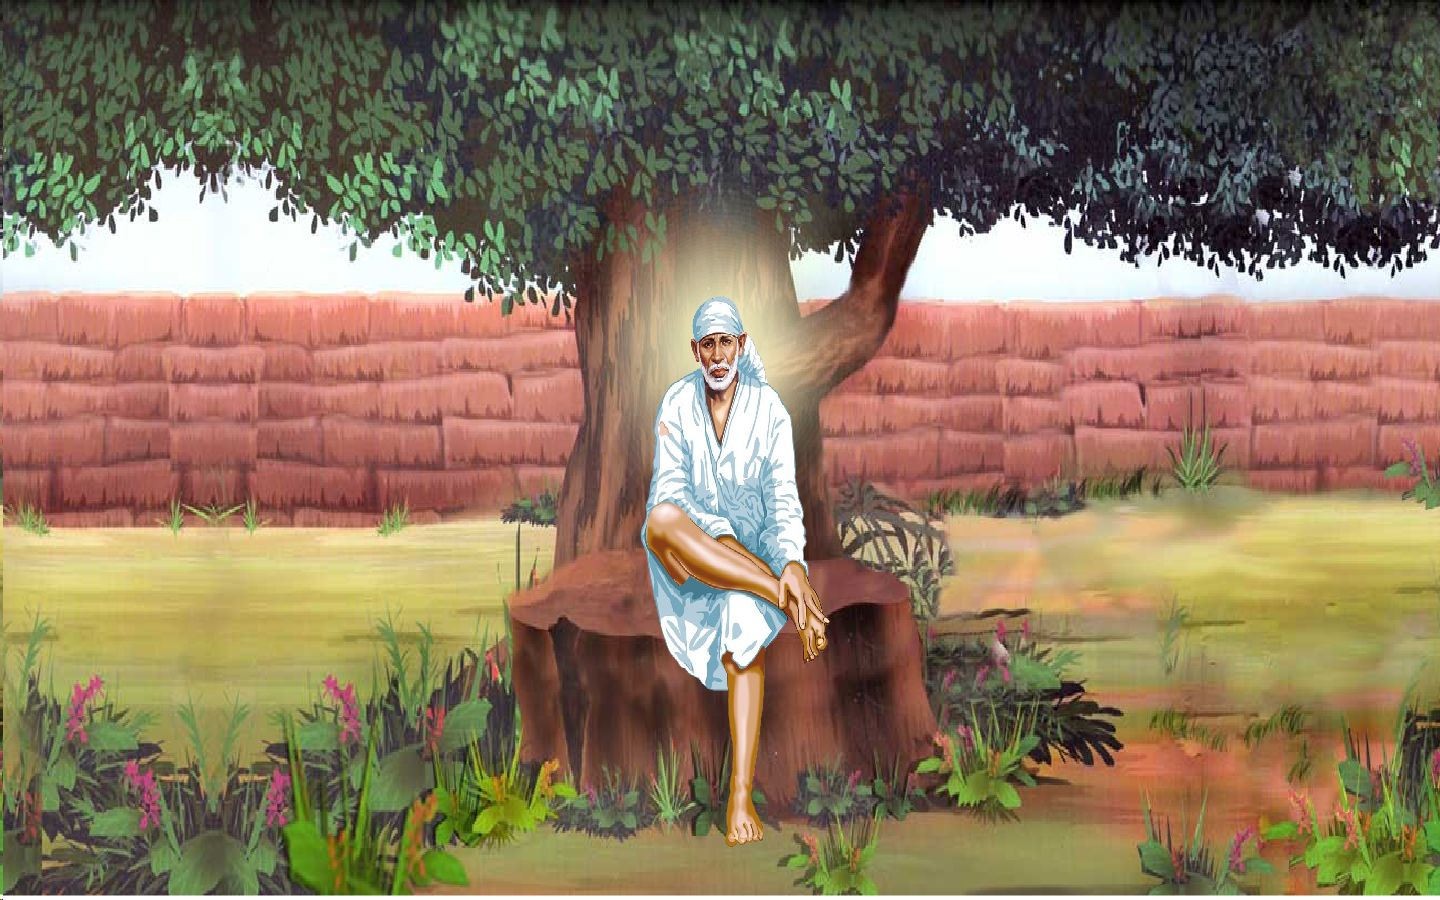 Best Wallpaper Lord Sai Baba - Sai+Baba+Sitting+Under+Need+Tree  Perfect Image Reference_2735100.jpg